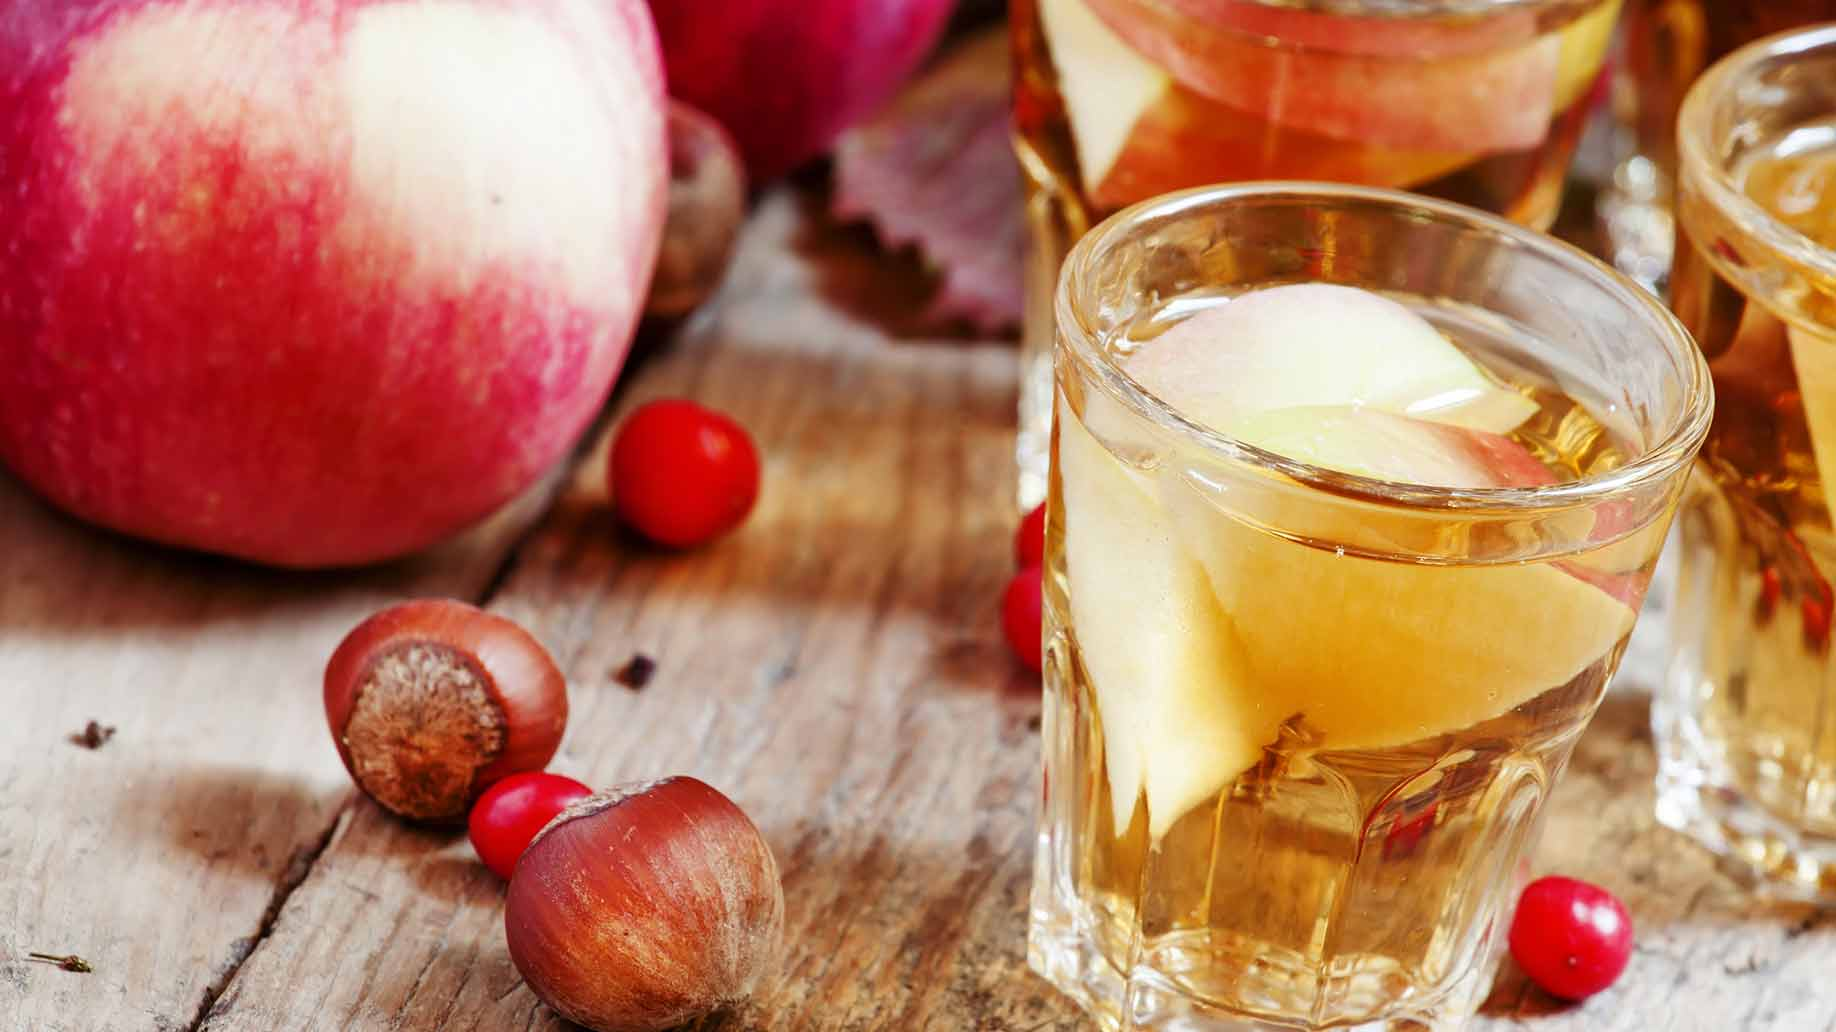 apple cider vinegar cleanse drink juice